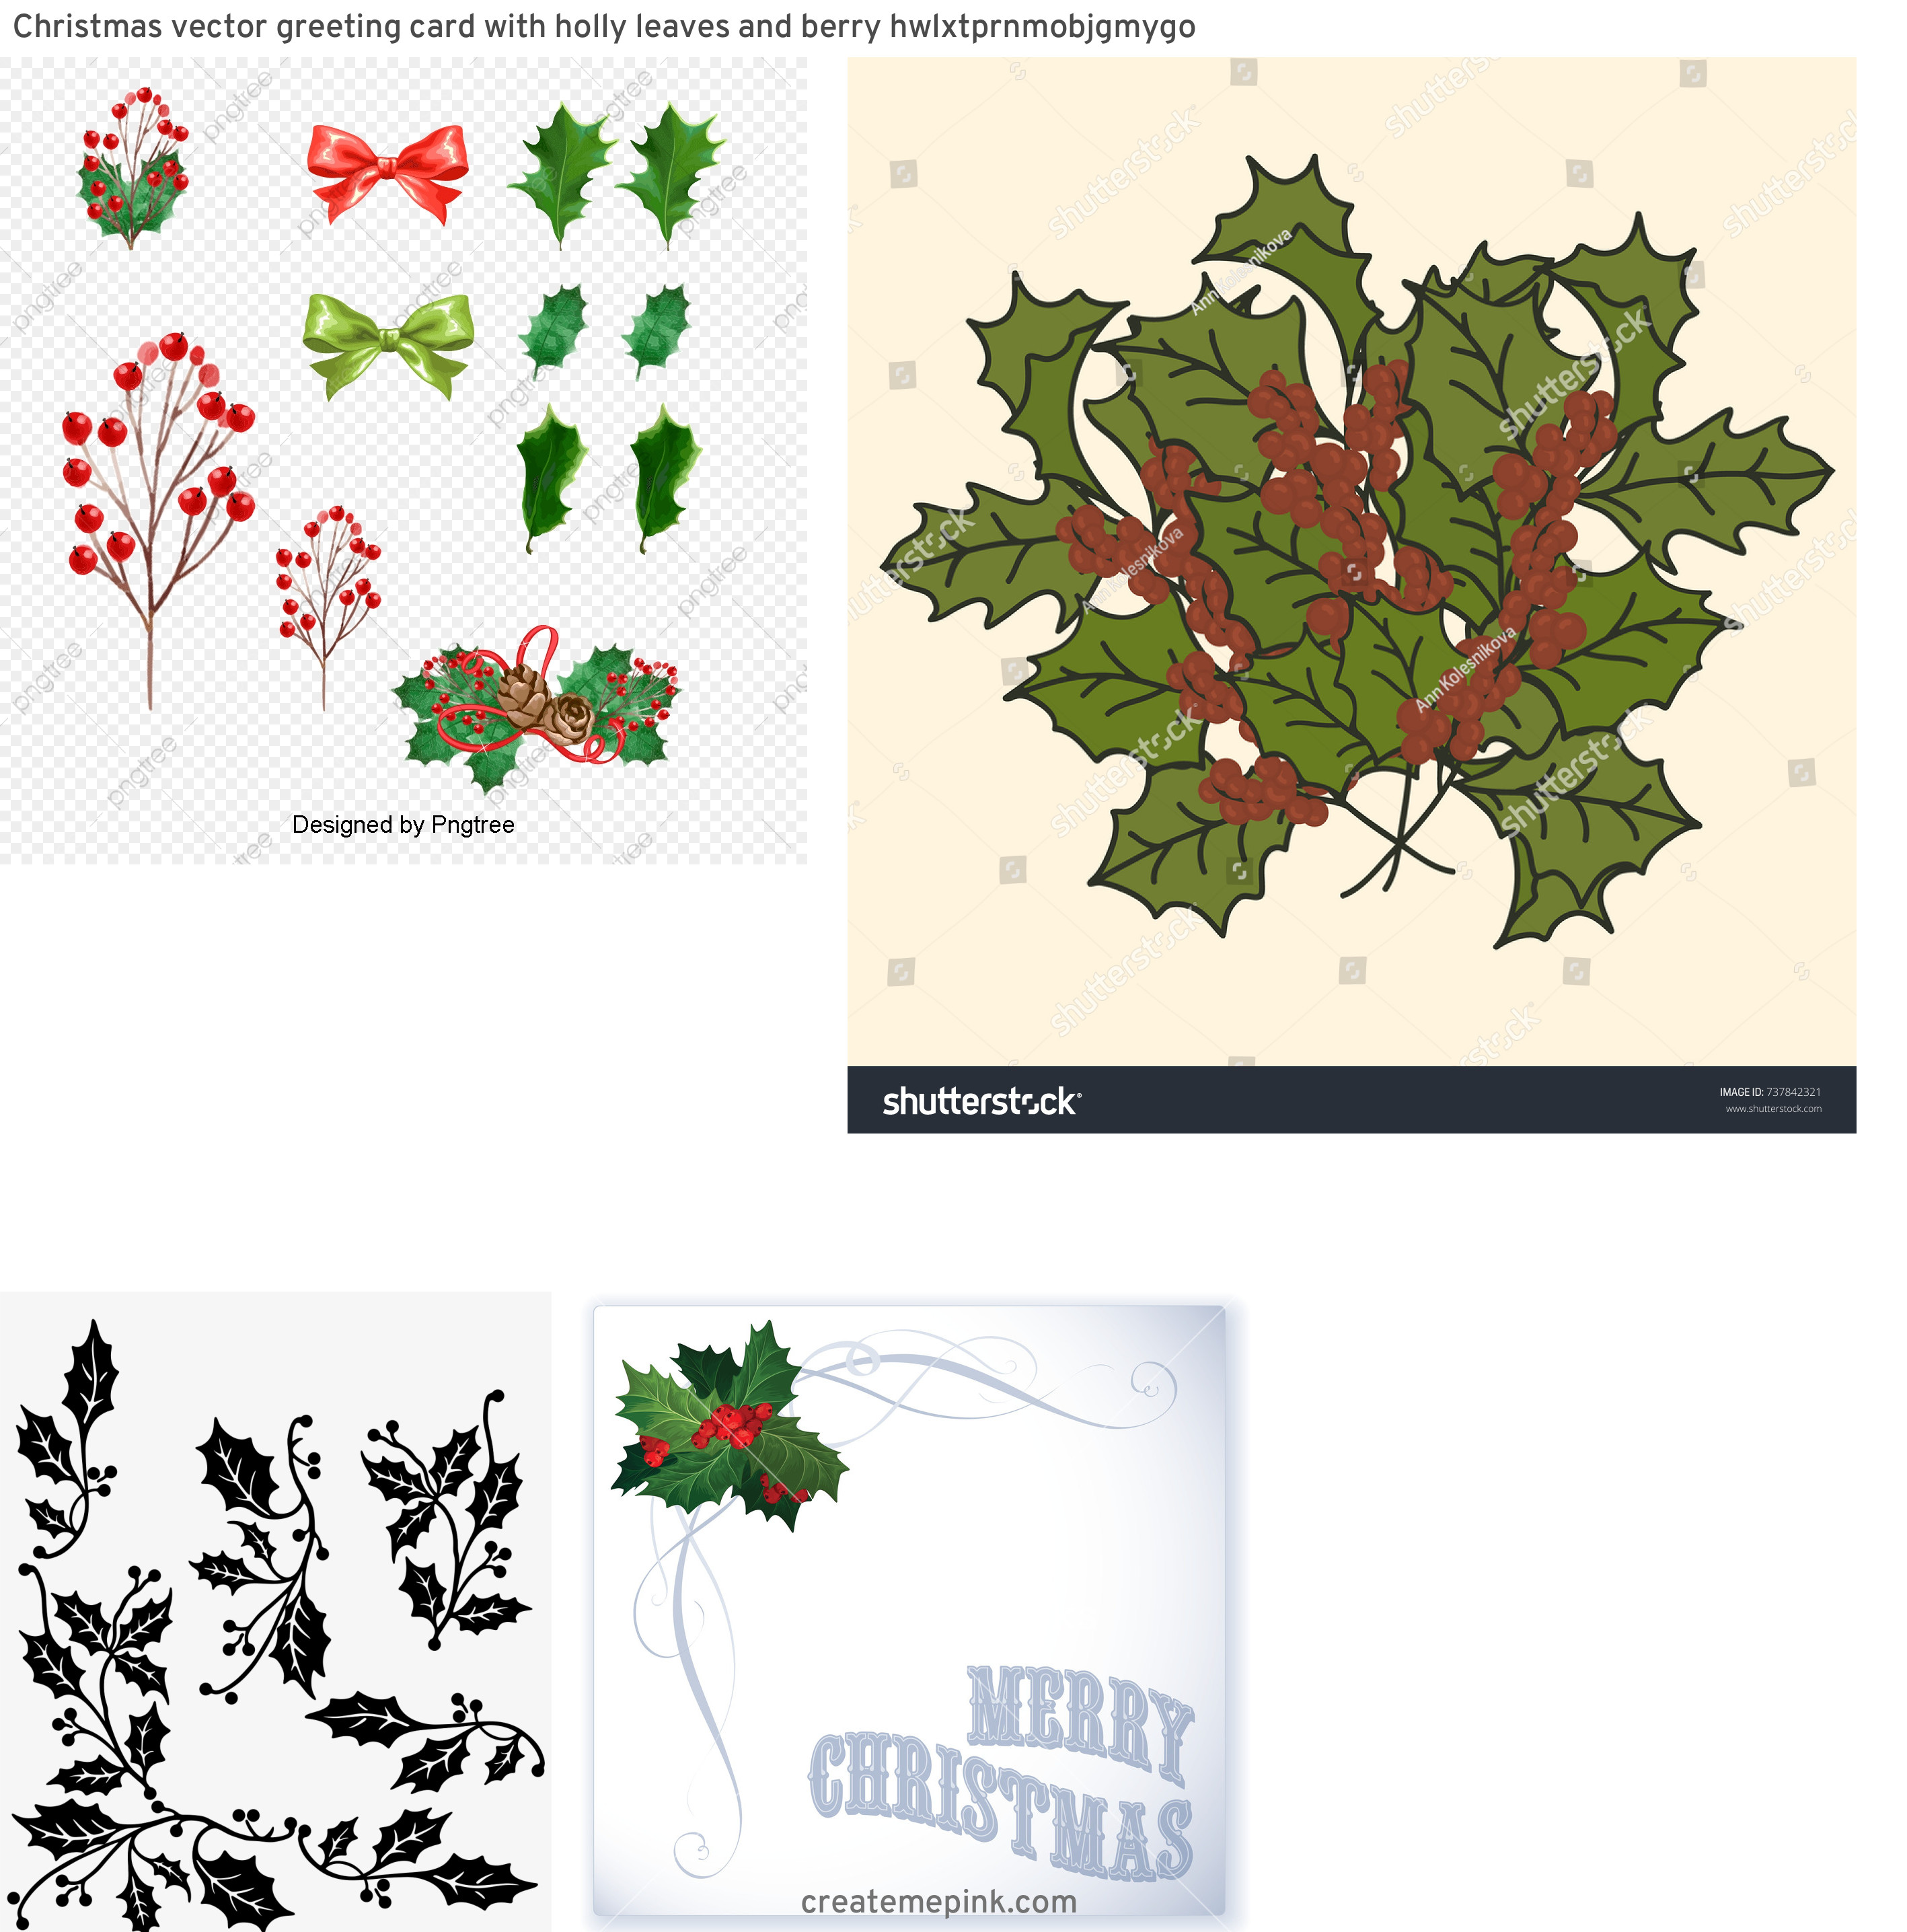 Vintage Look Holly Leaves Vector: Christmas Vector Greeting Card With Holly Leaves And Berry Hwlxtprnmobjgmygo